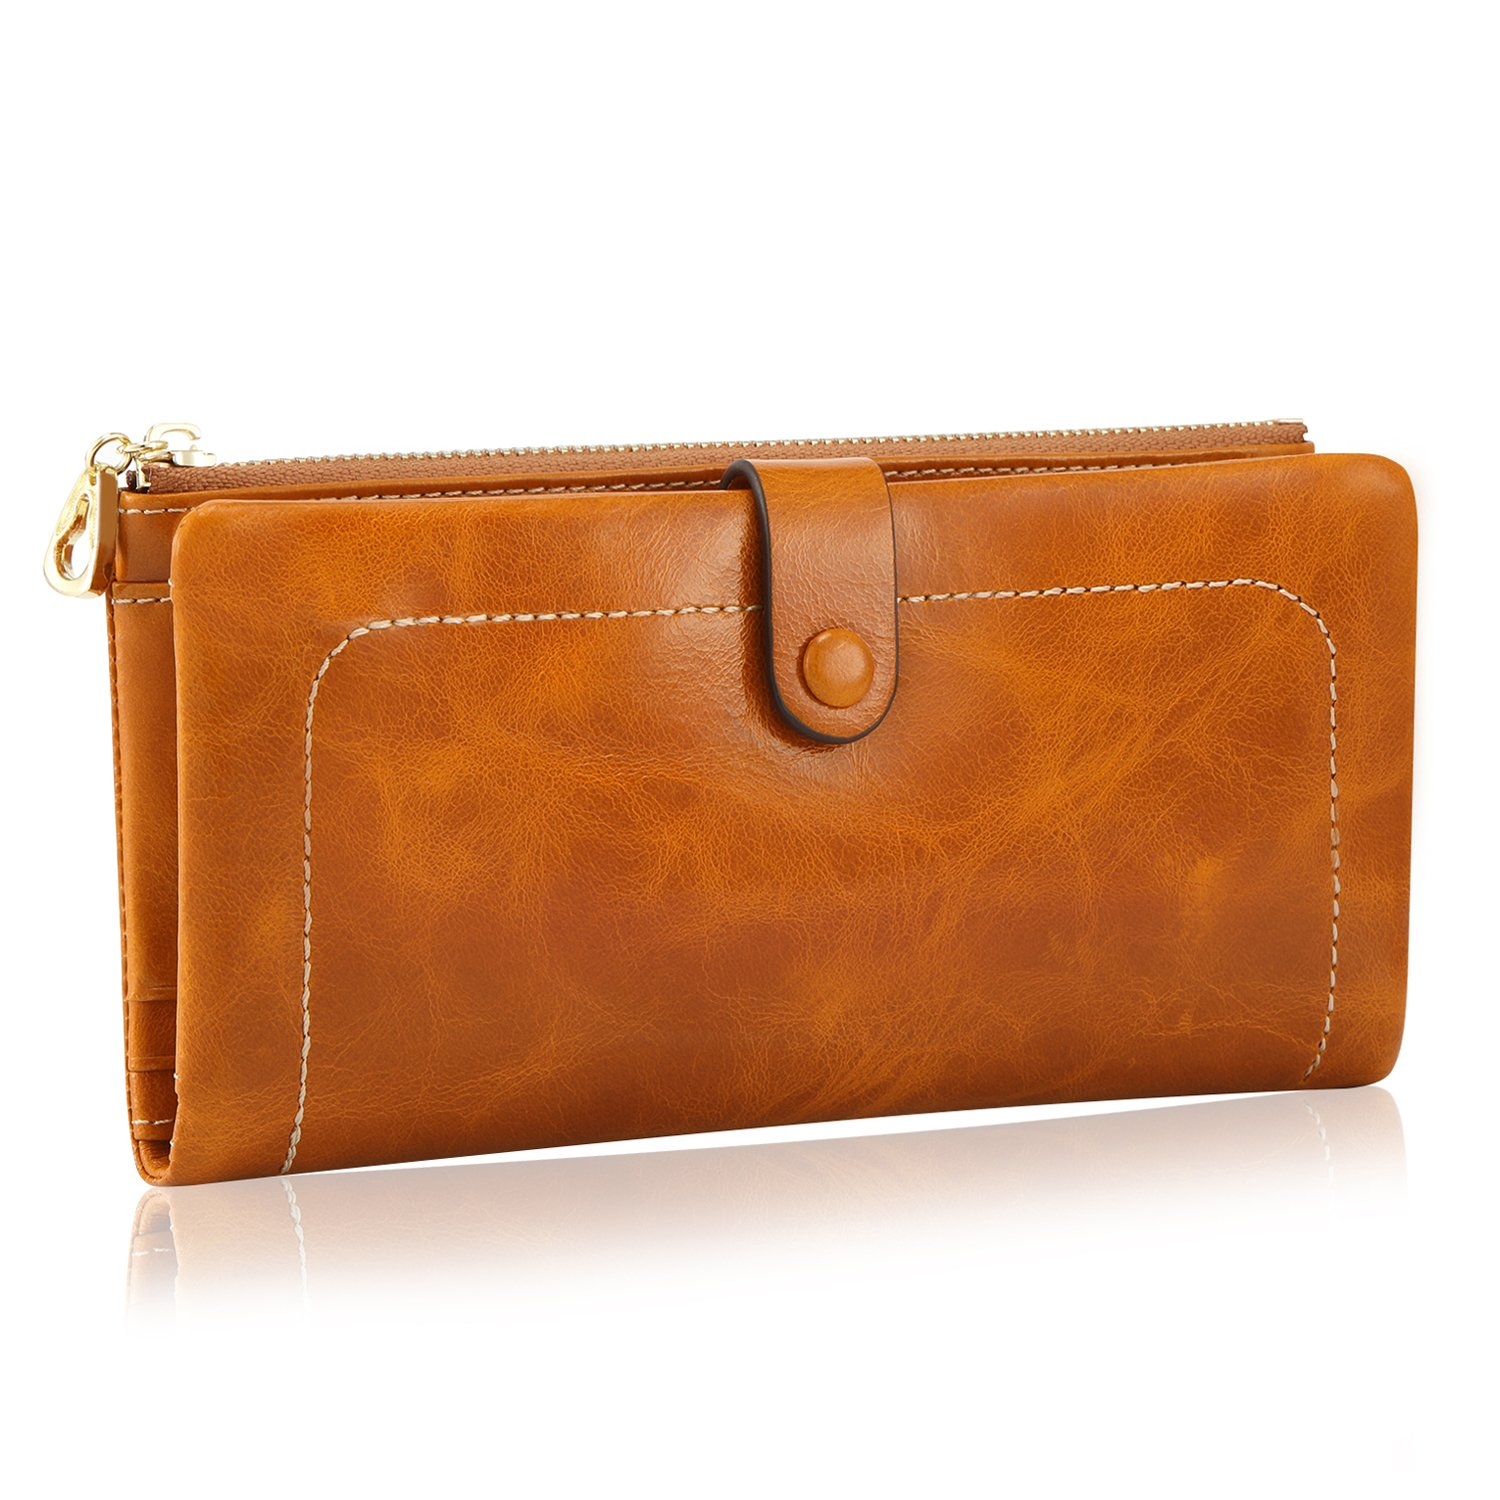 Kattee Women's Fashion Real Leather Zipper Wallet Card Bag Coin Case Phone Holder Brown by Kattee (Image #2)